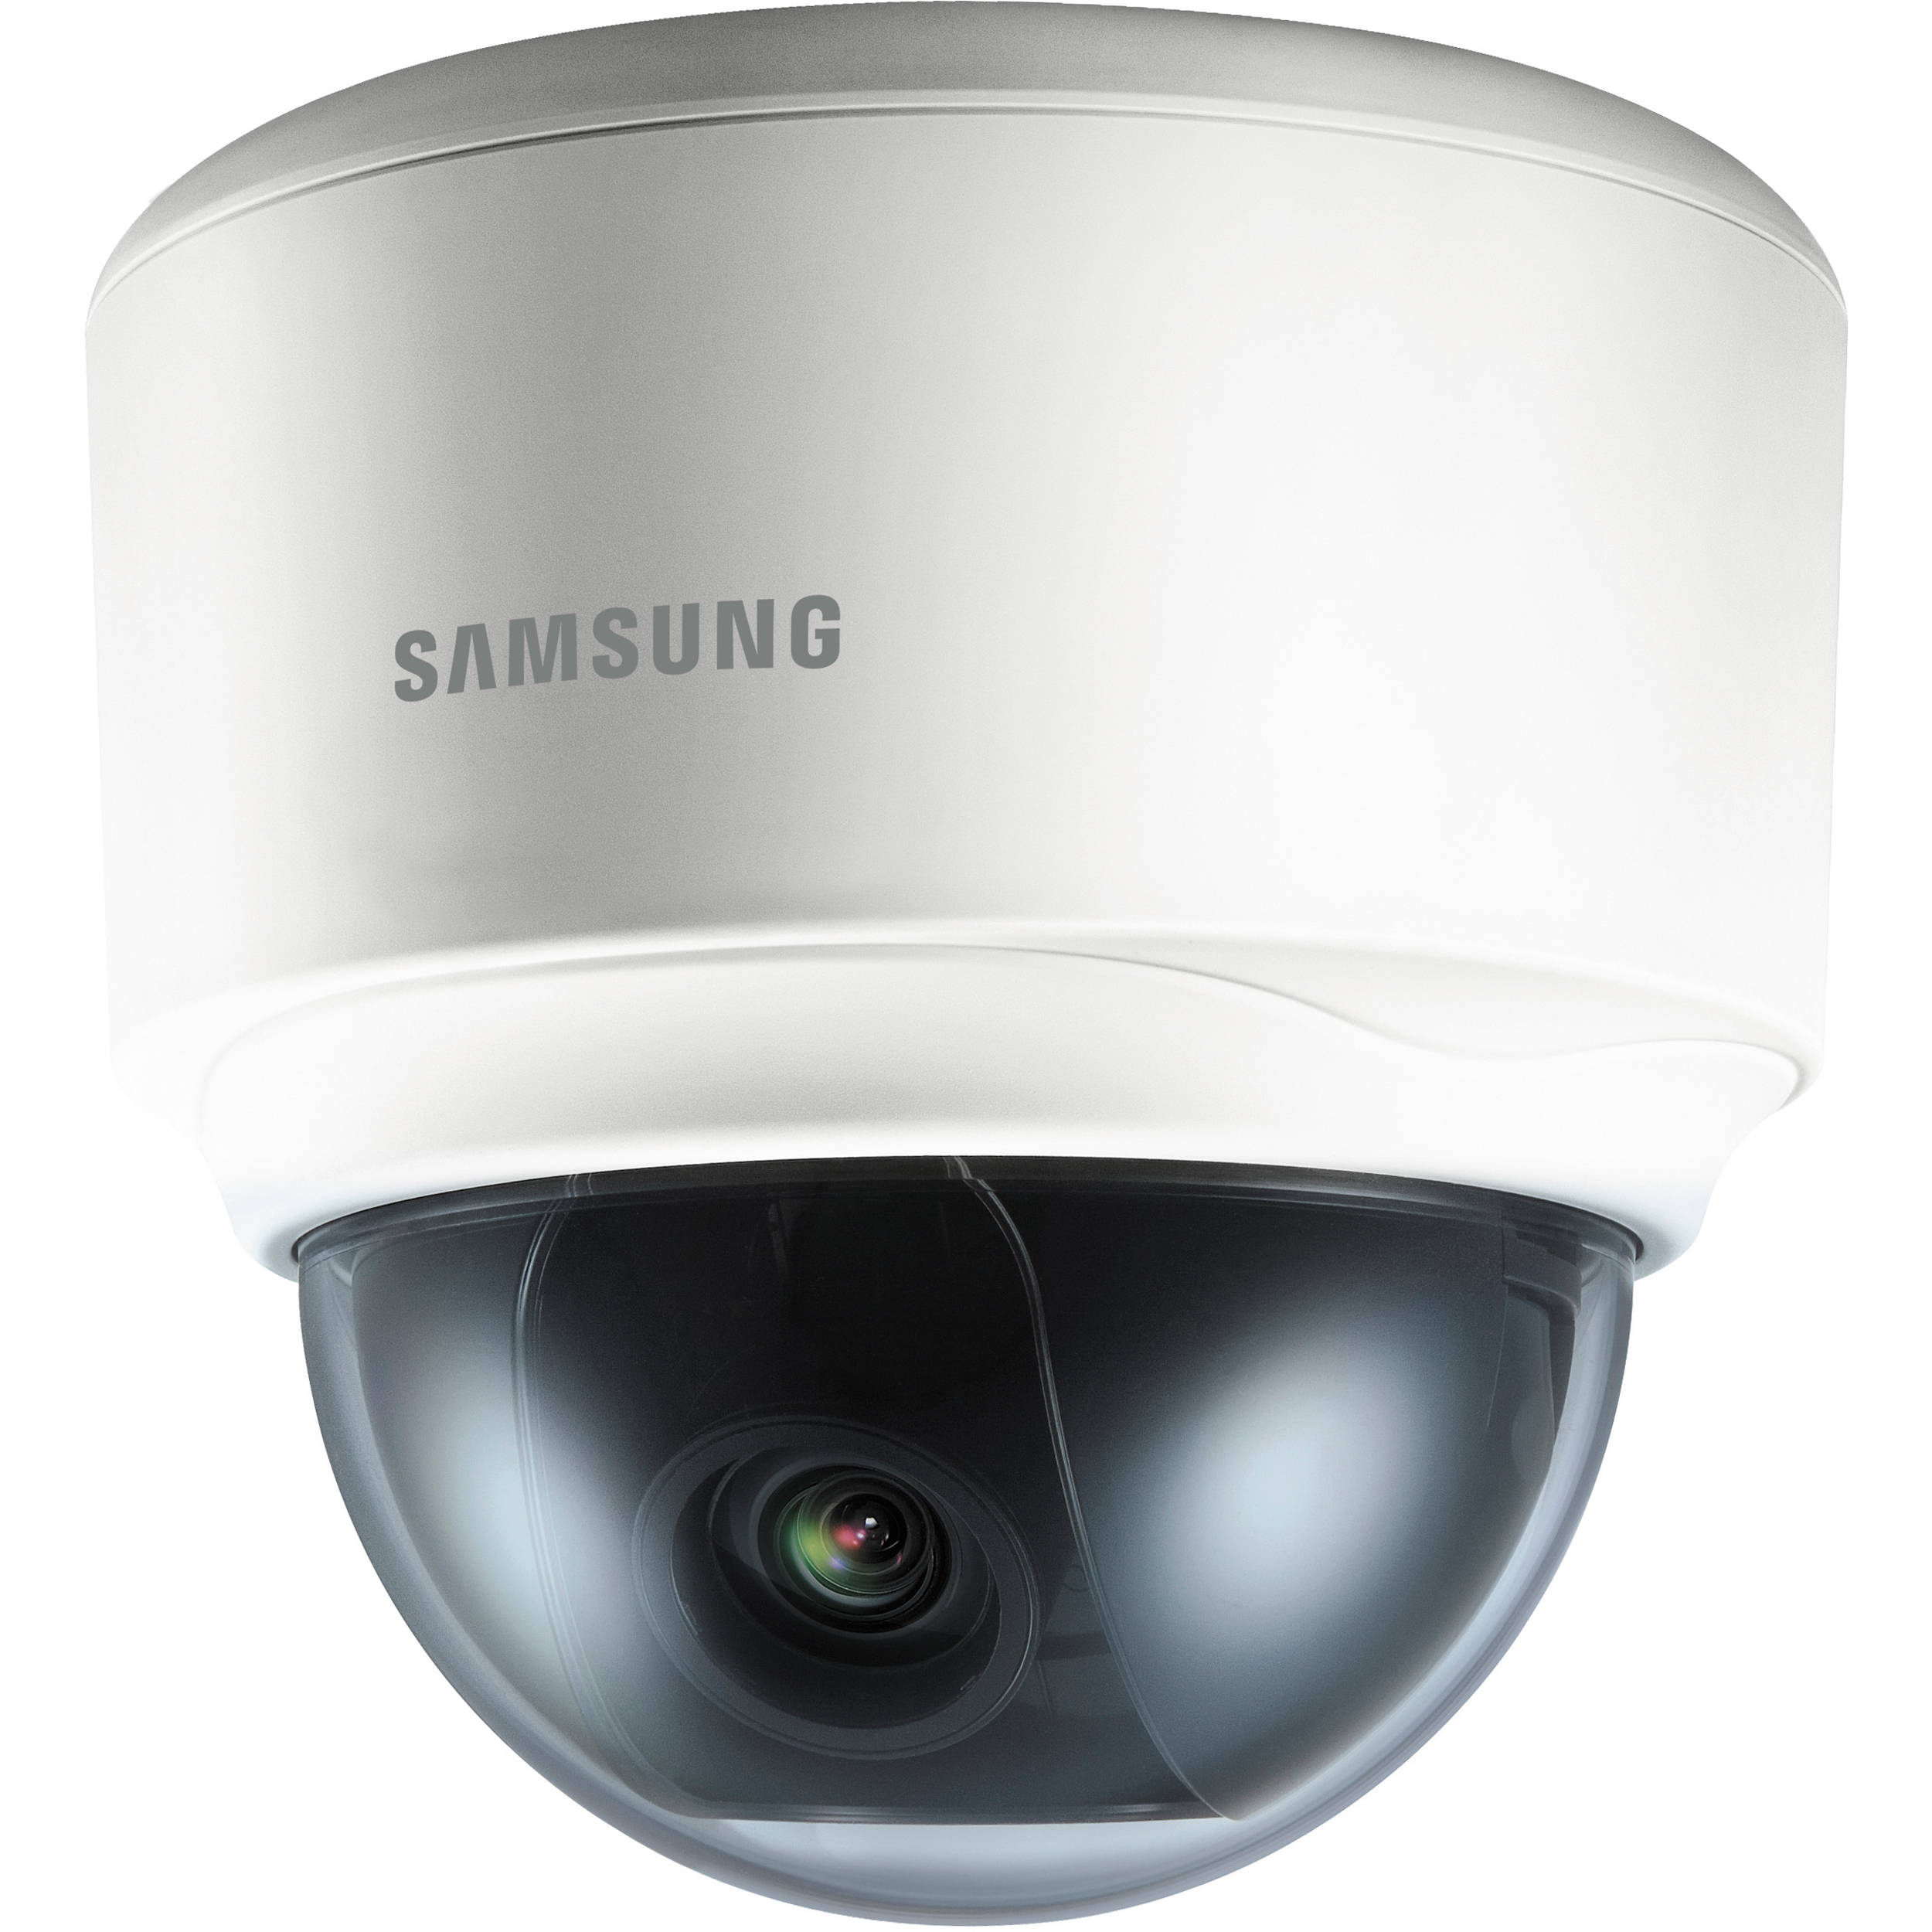 SAMSUNG SNV-3082 NETWORK CAMERA DRIVERS UPDATE